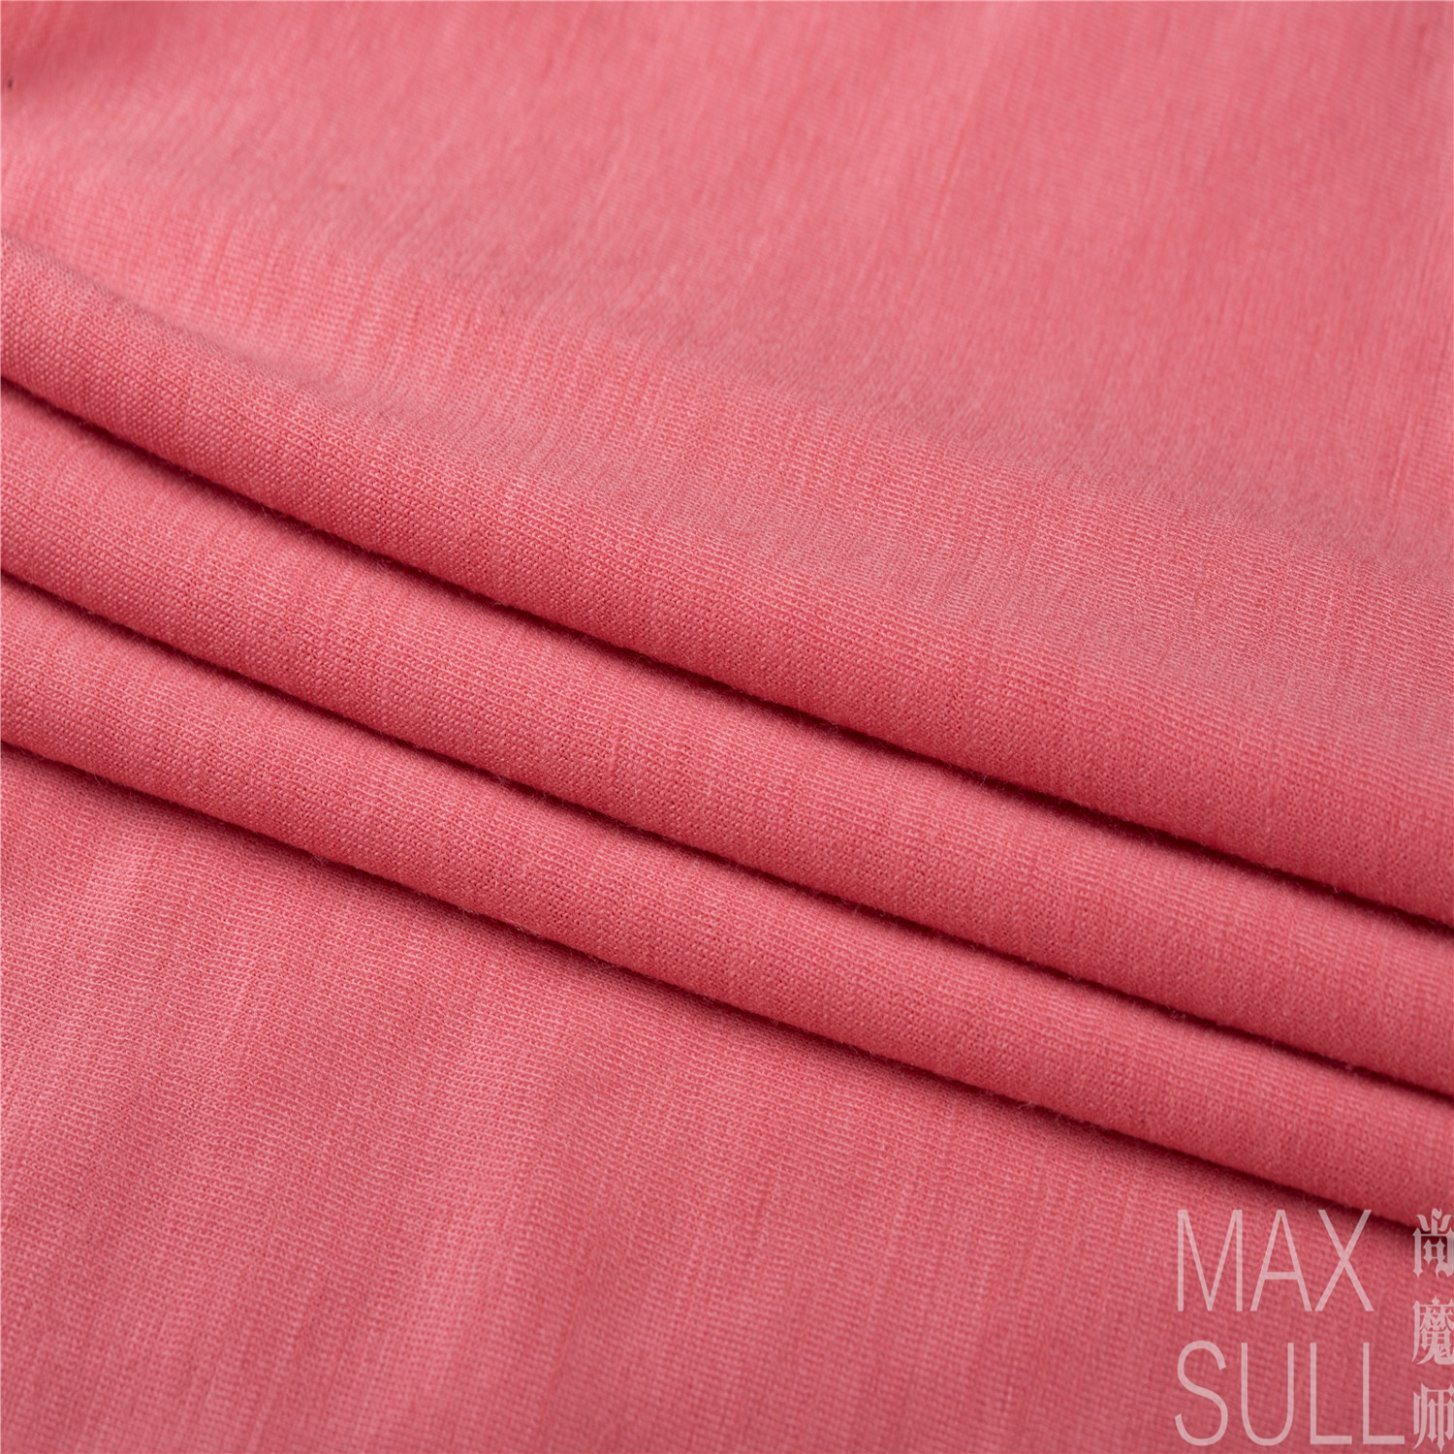 100% Machine Wash Wool Fabric for Nightdress in Light Red